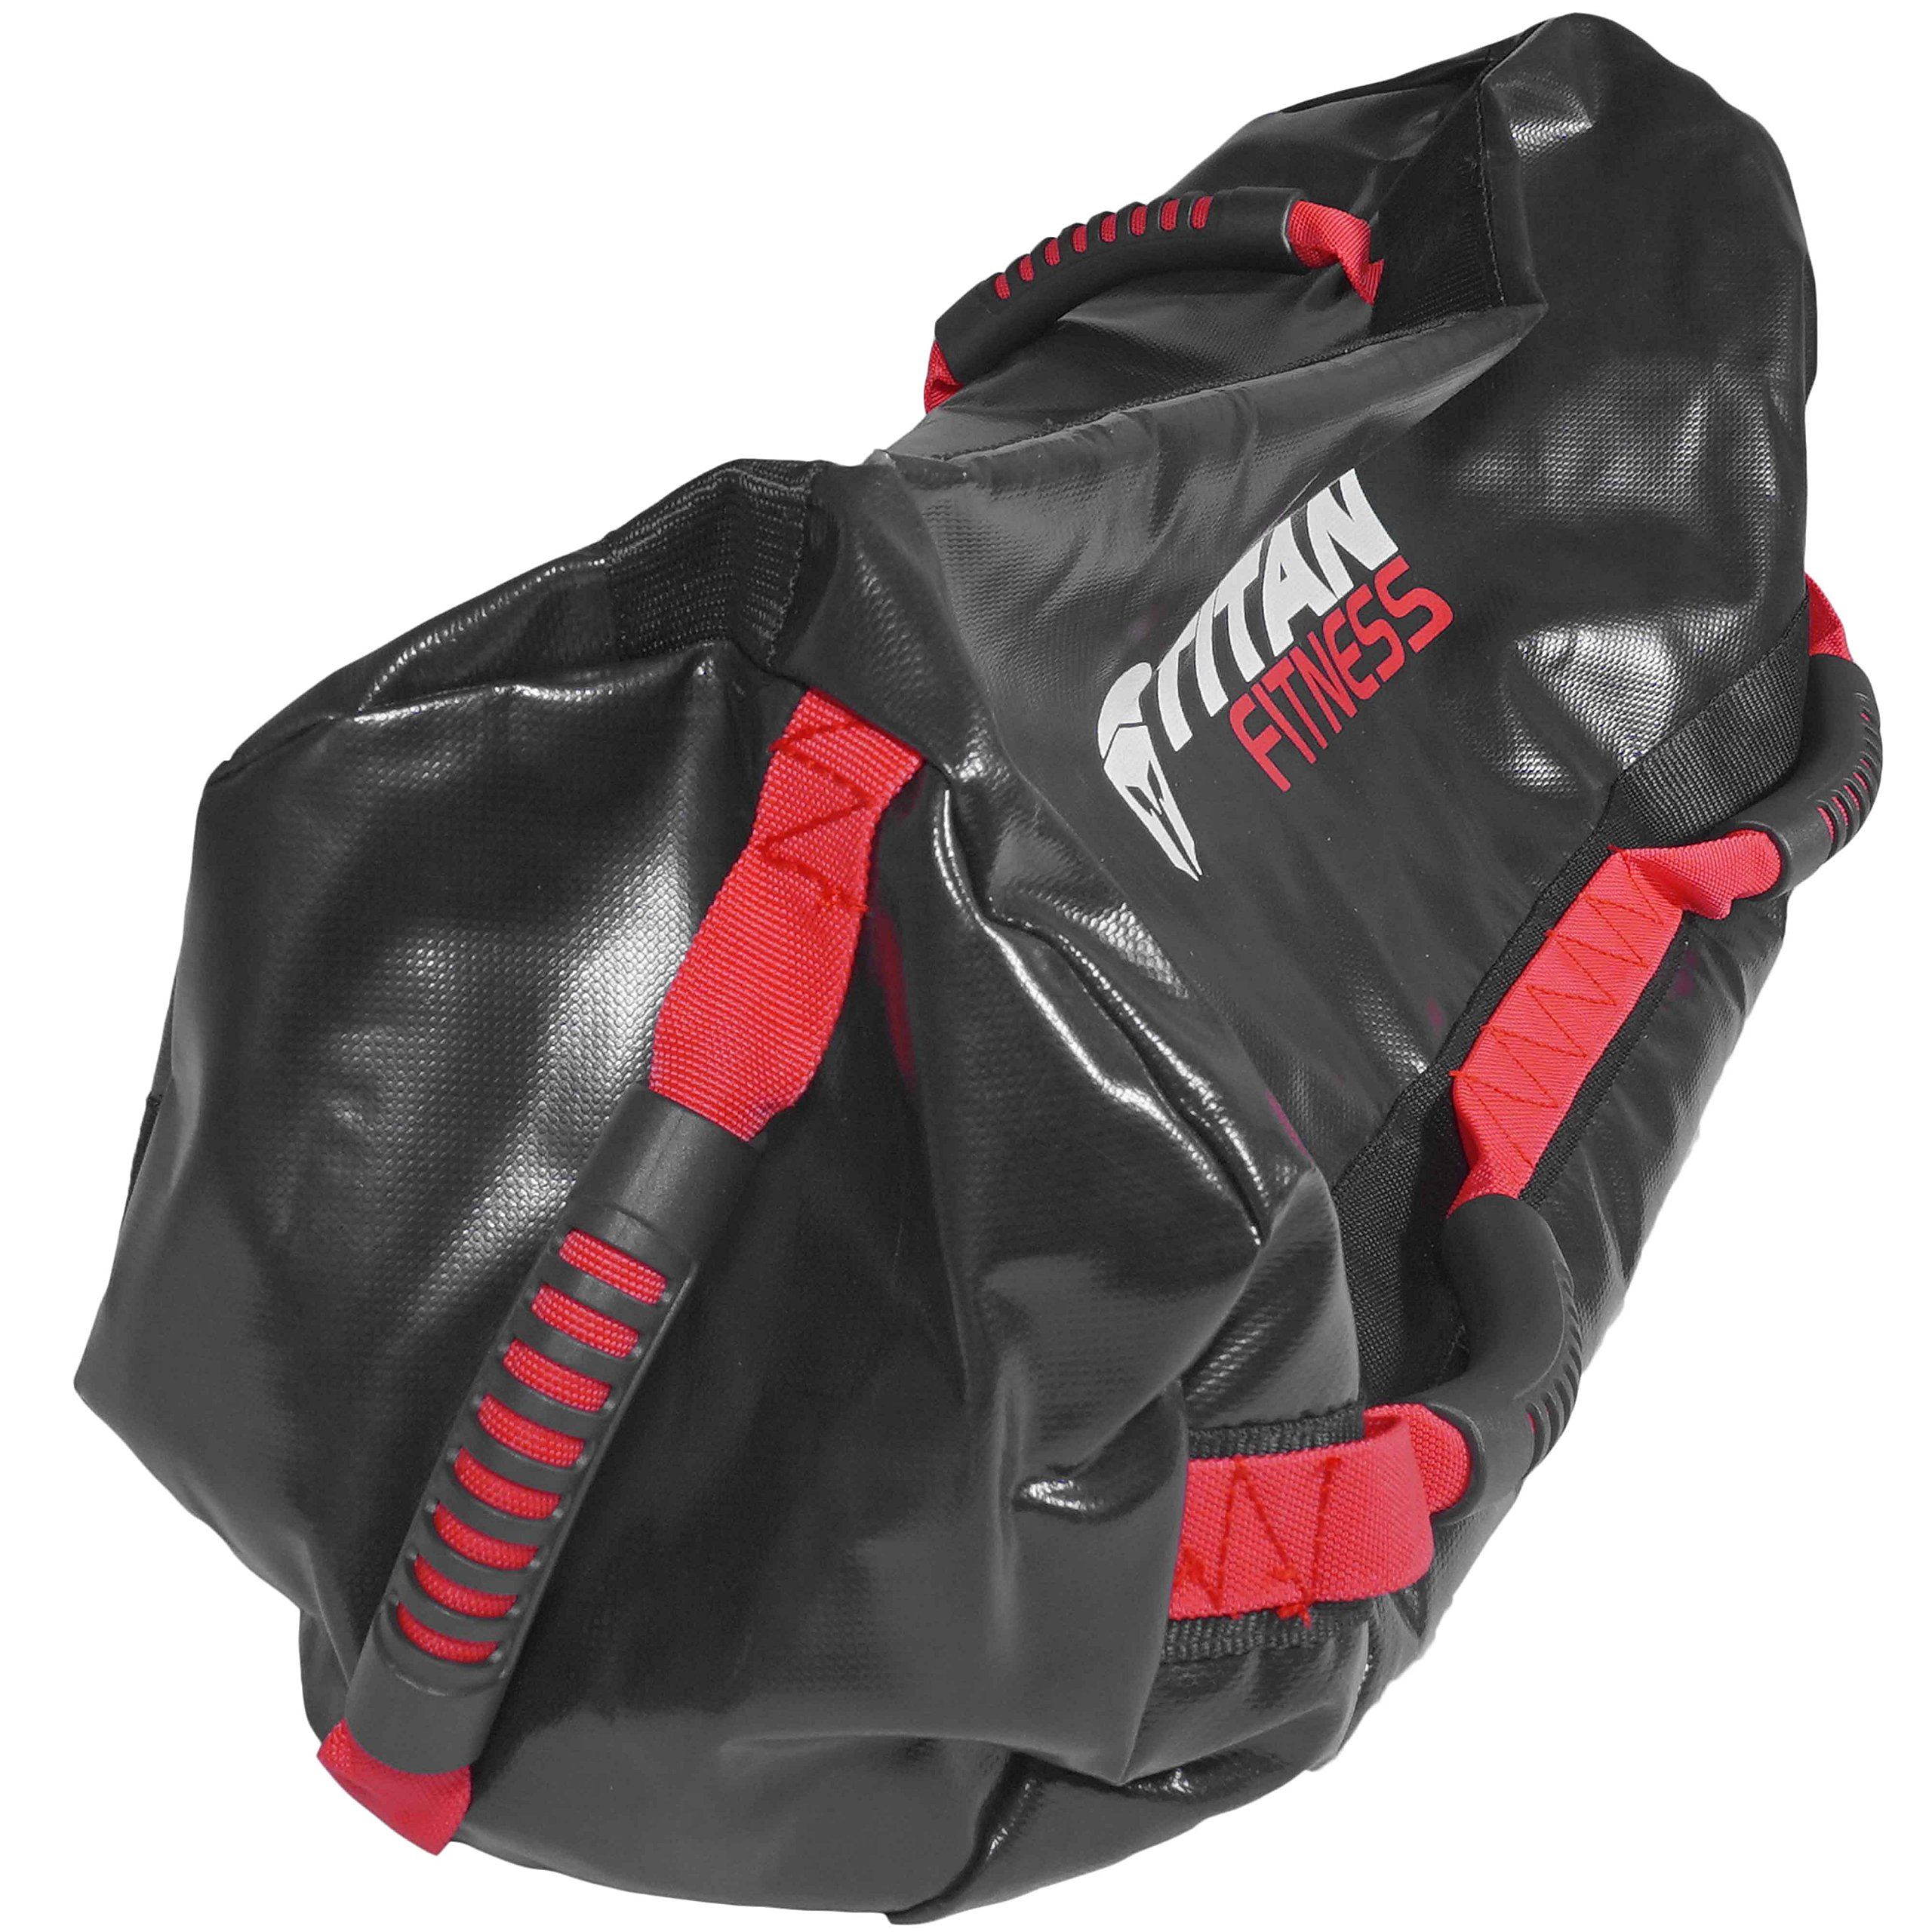 Titan Fitness 60 lb Heavy Duty Workout Weight Sandbag Exercise Training Bag by Titan Fitness (Image #4)